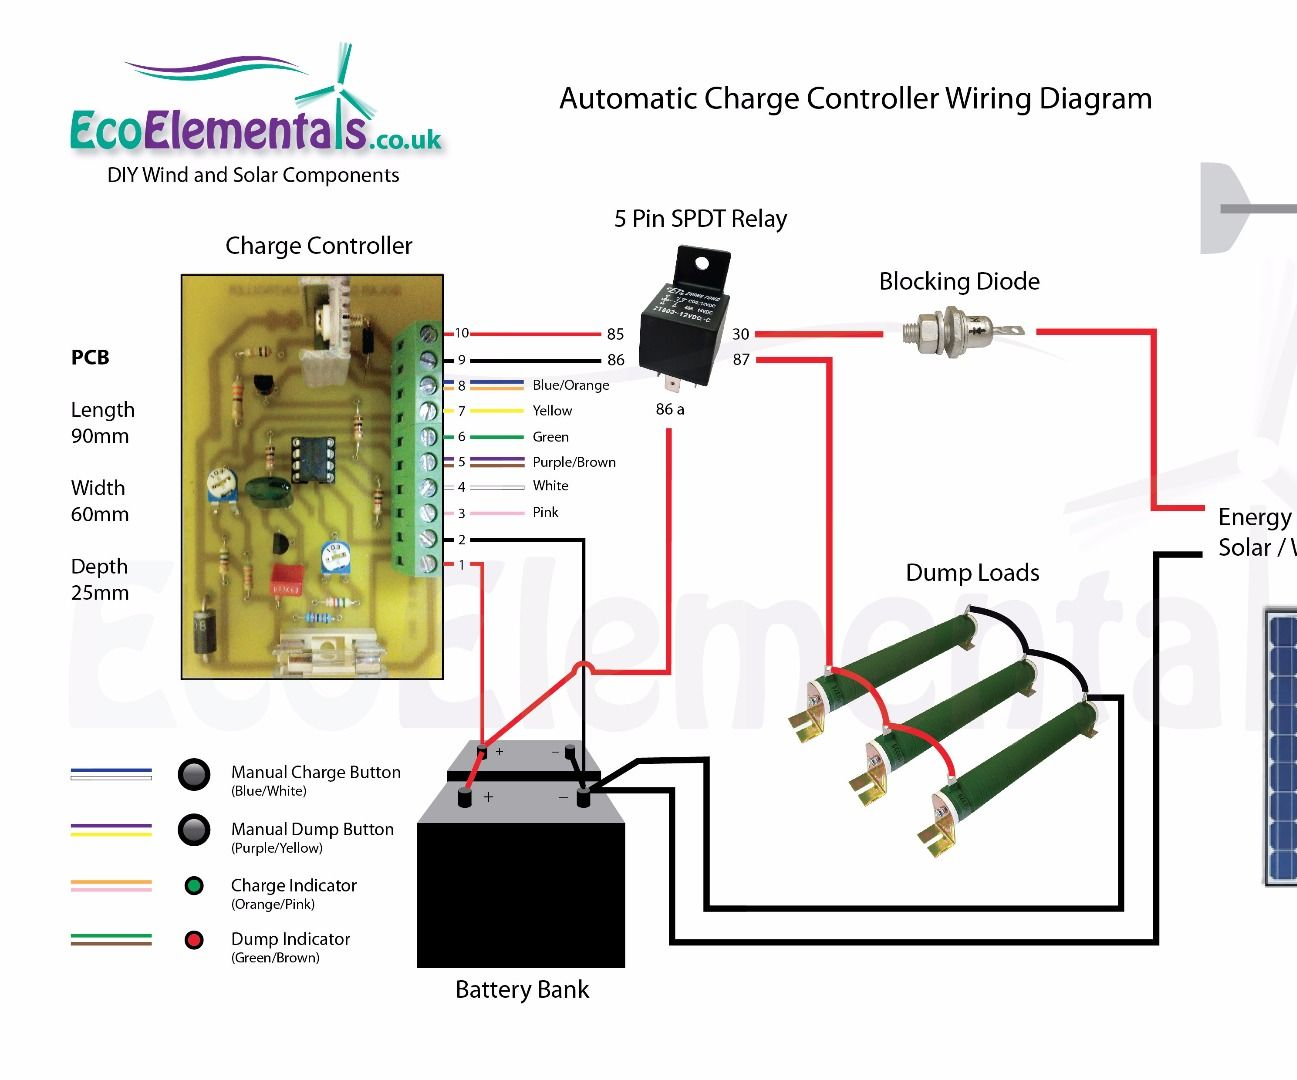 medium resolution of charge controller wiring diagram for diy wind turbine or solar panels victron solar charge controller wiring diagram solar controller wiring diagram